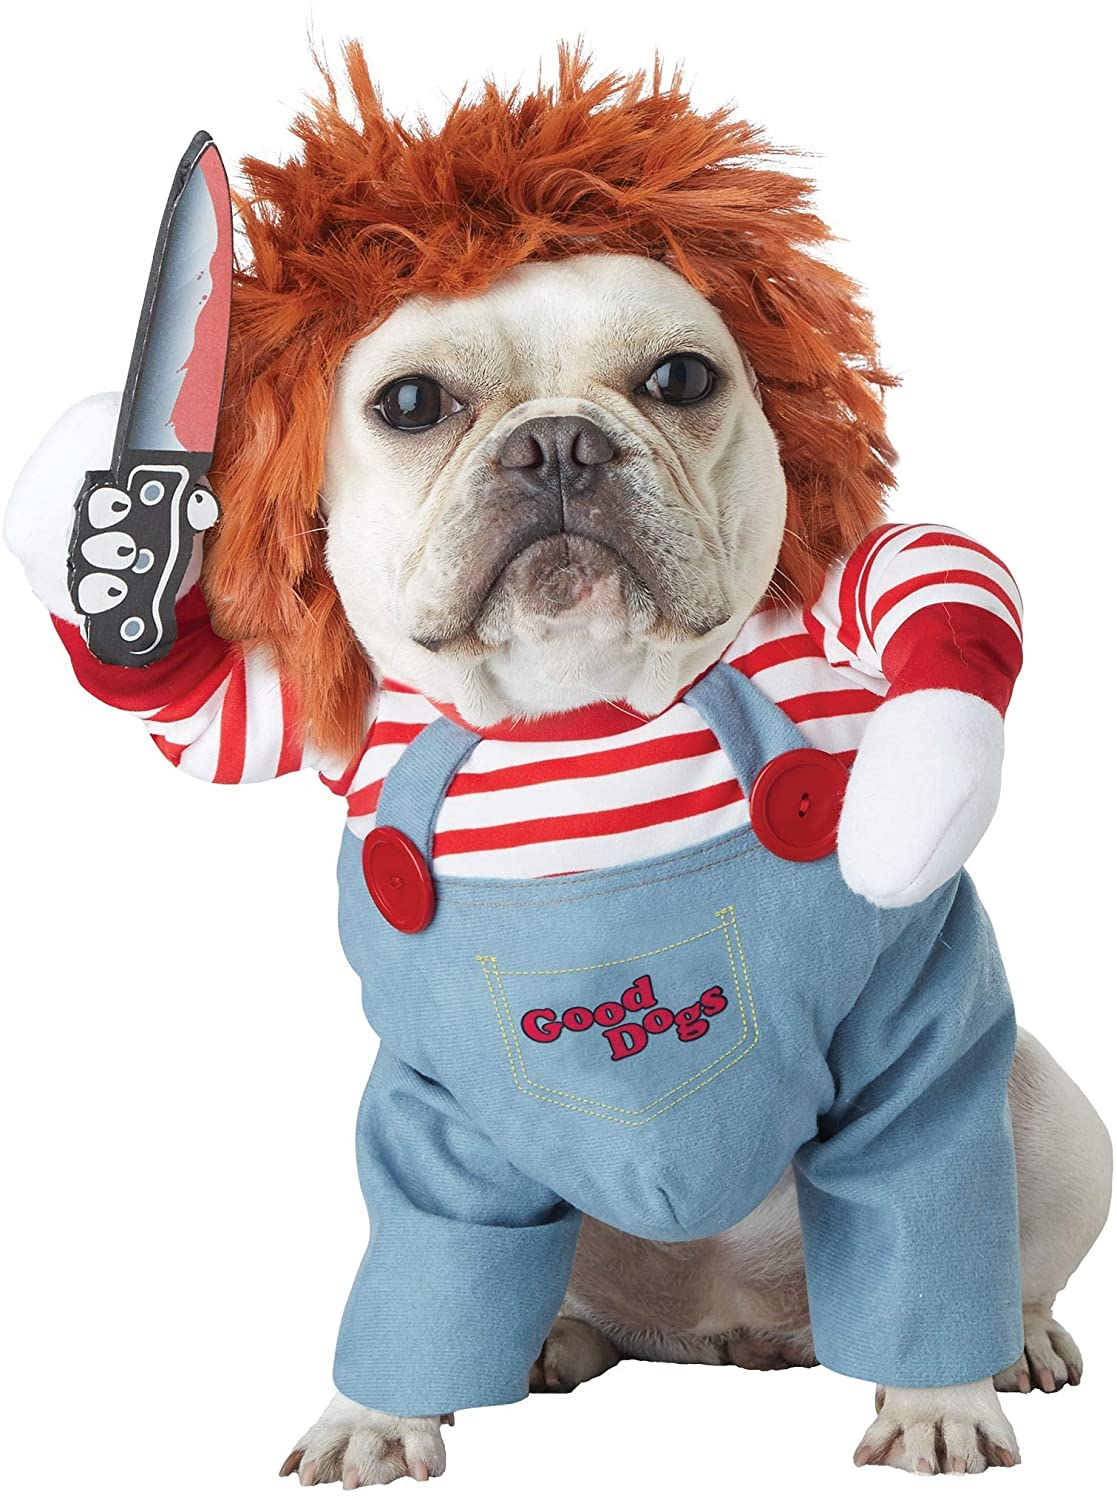 Chucky costume for dogs